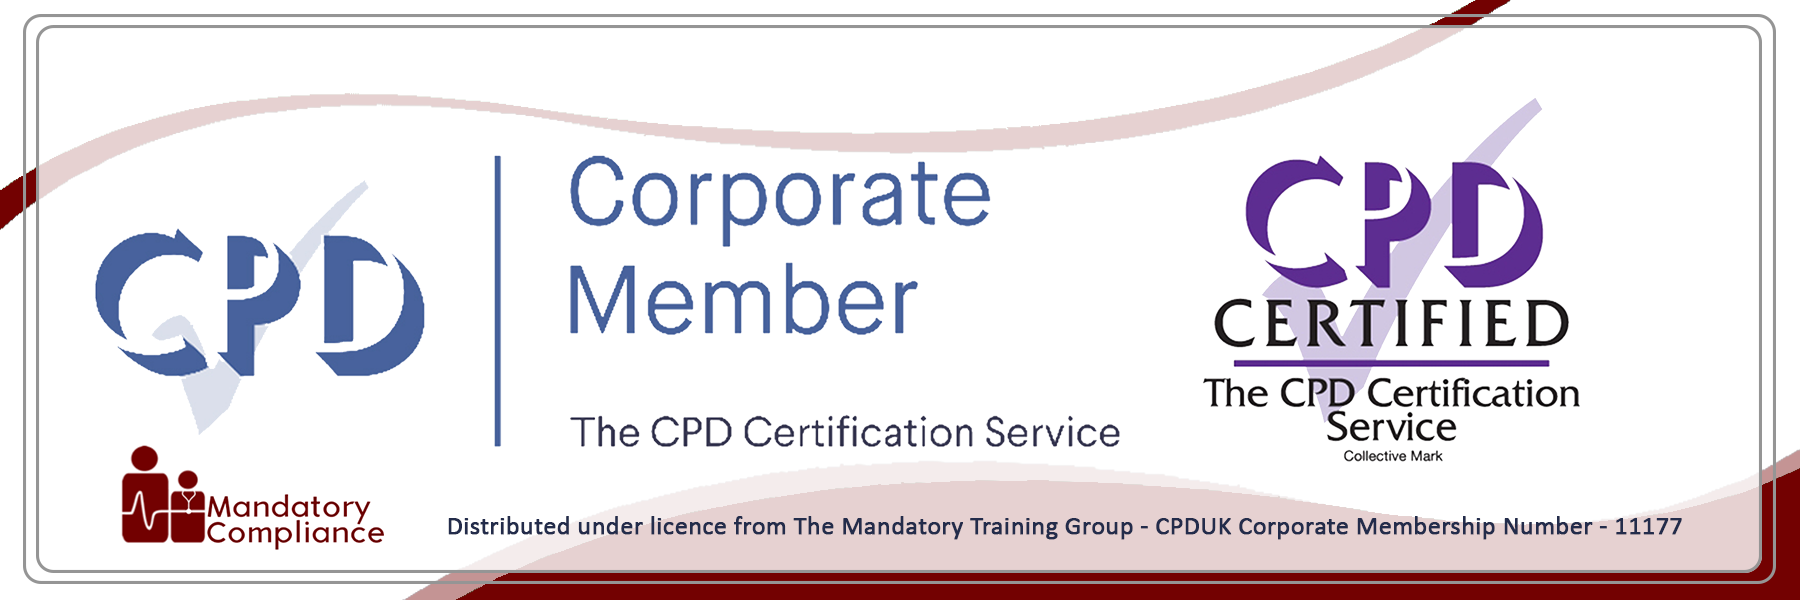 Care Certificate Standard 5 - Train the Trainer - The Mandatory Compliance UK -